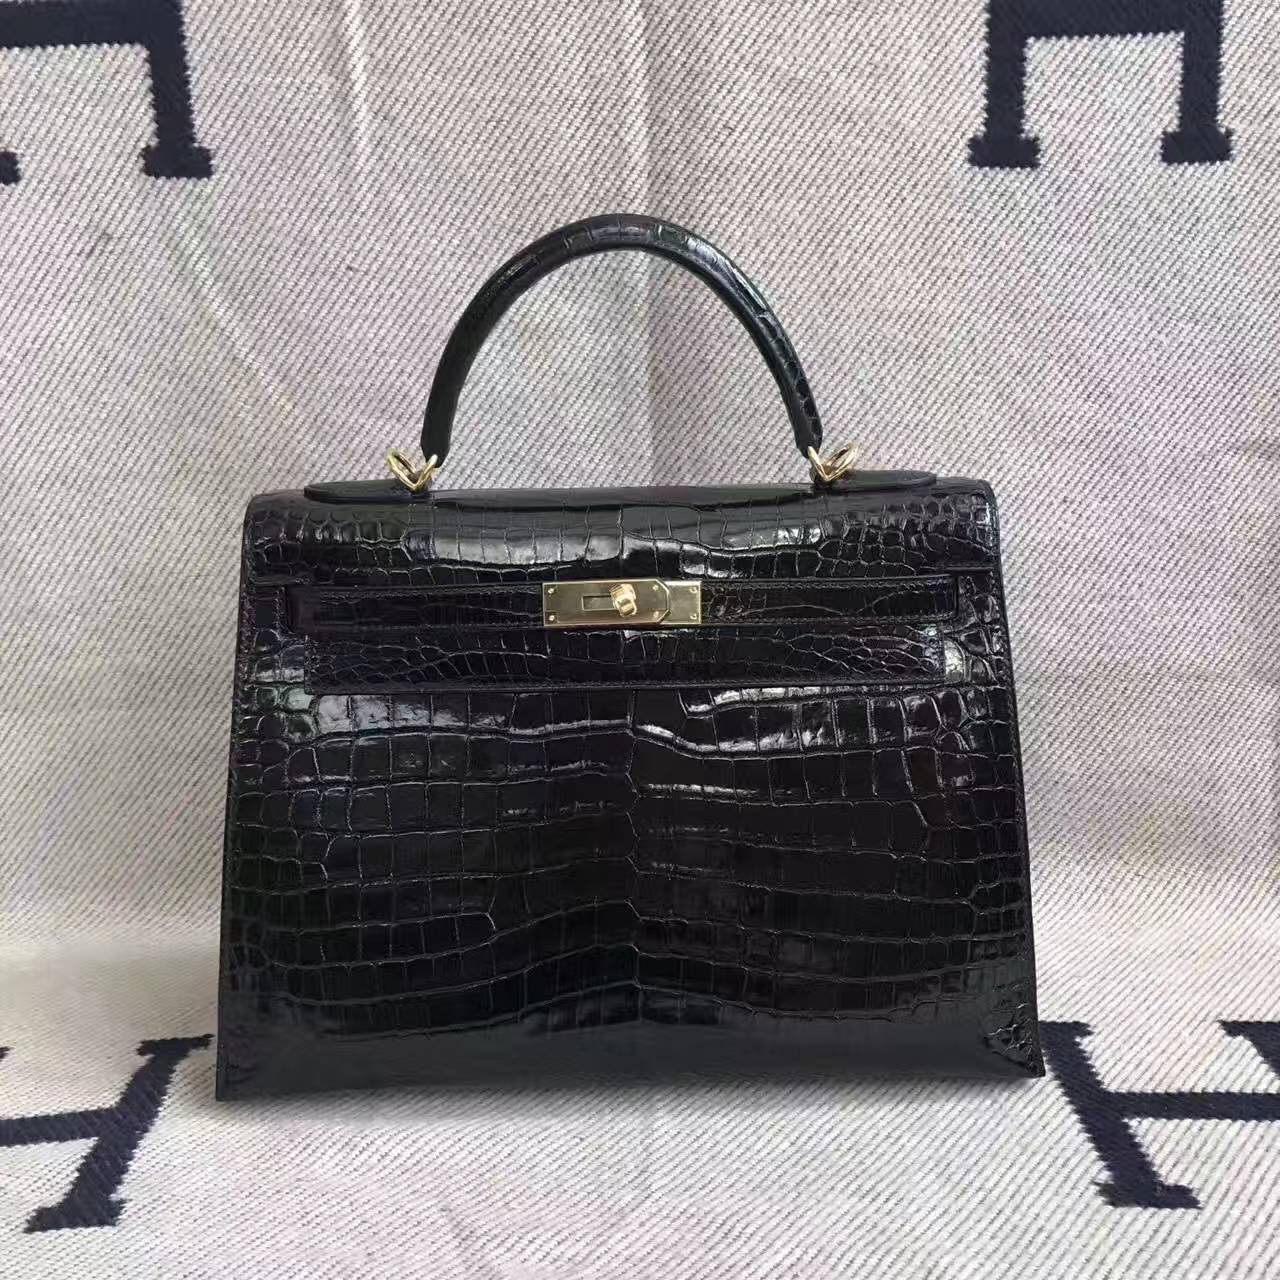 Wholesale Hermes CK89 Black Crocodile Shiny Leather Kelly 32cm Handbag